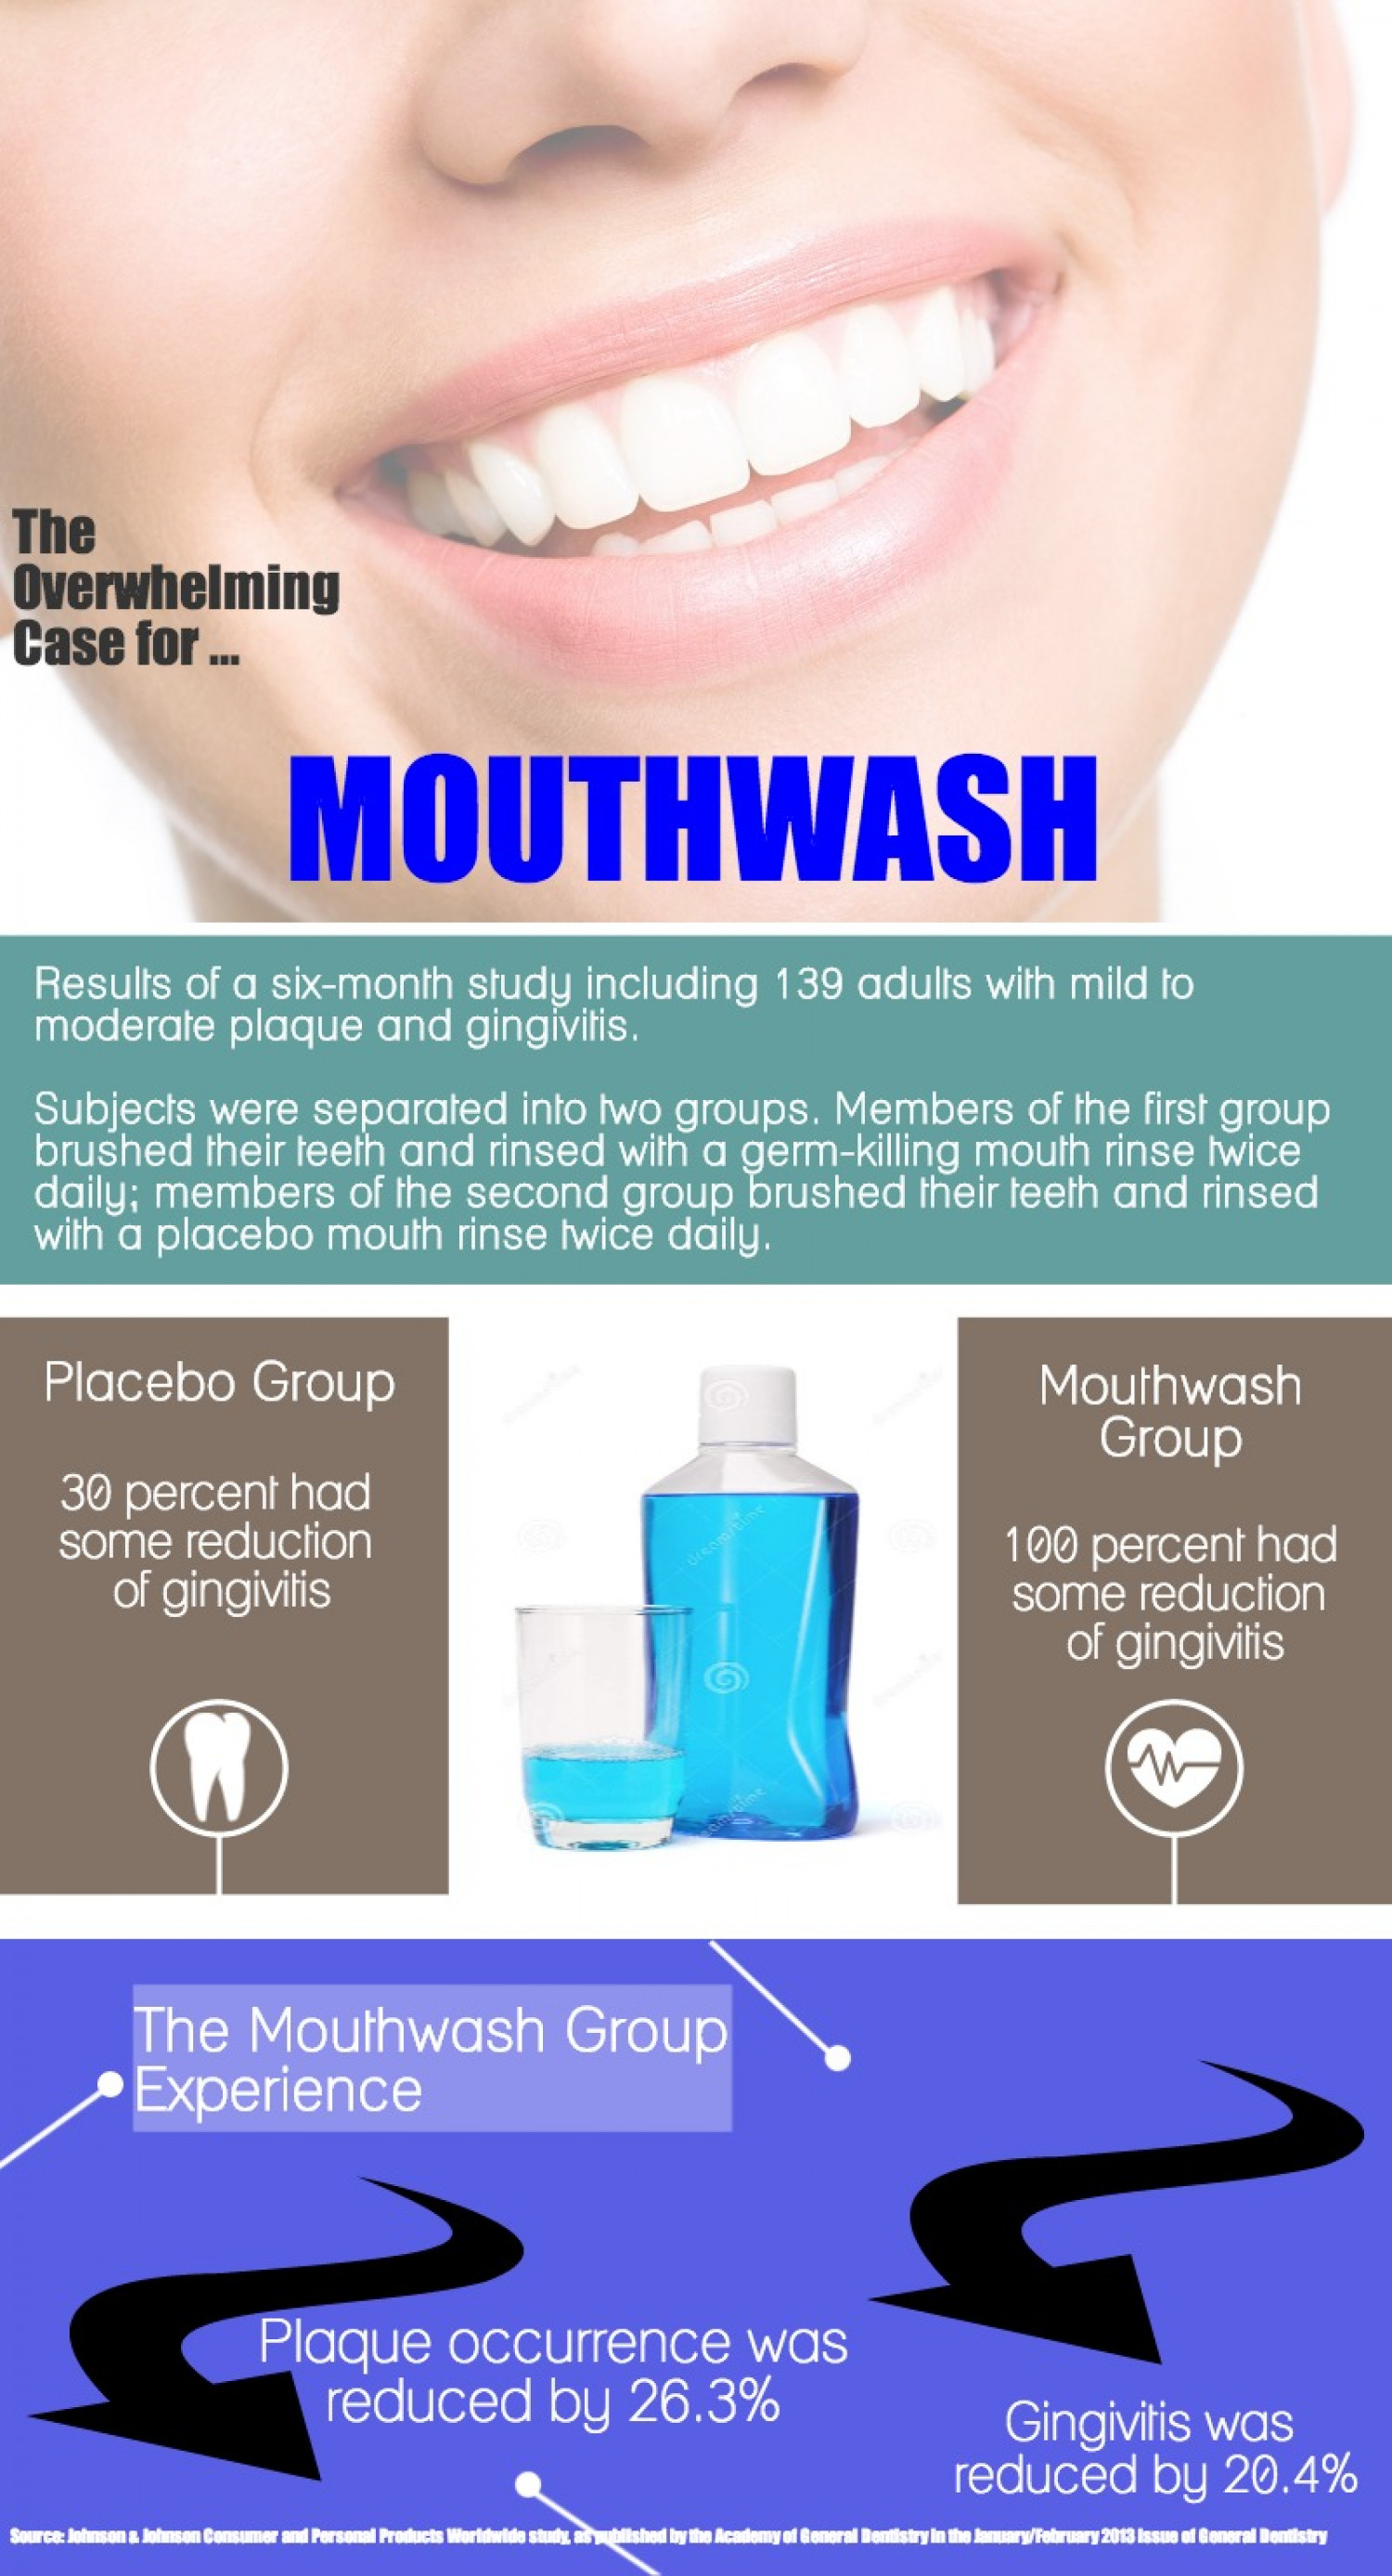 The Overwhelming Case for Mouthwash Infographic